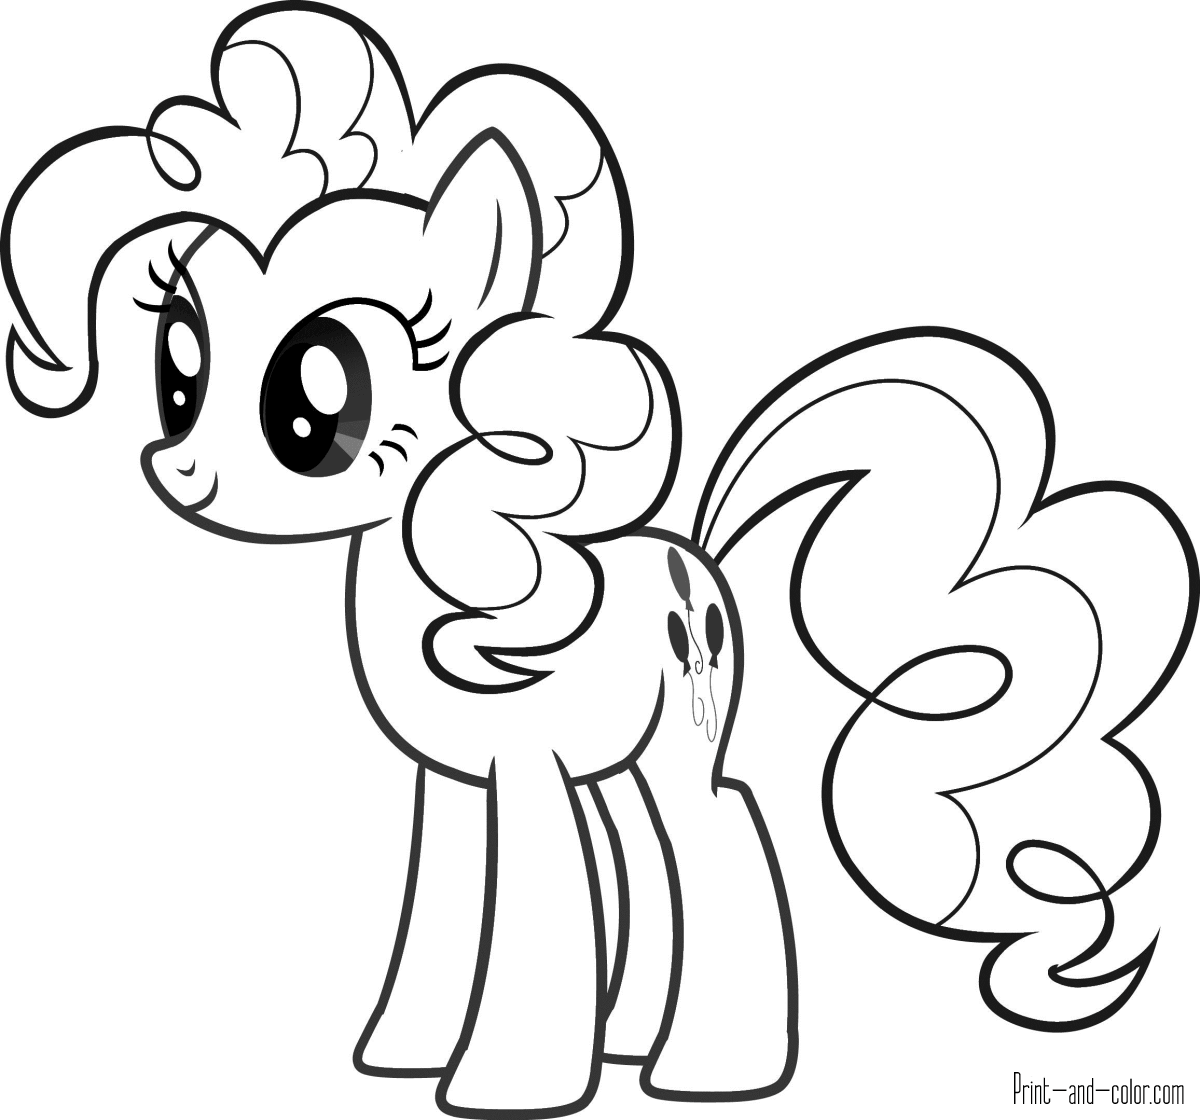 little pony to color free printable my little pony coloring pages for kids pony color to little